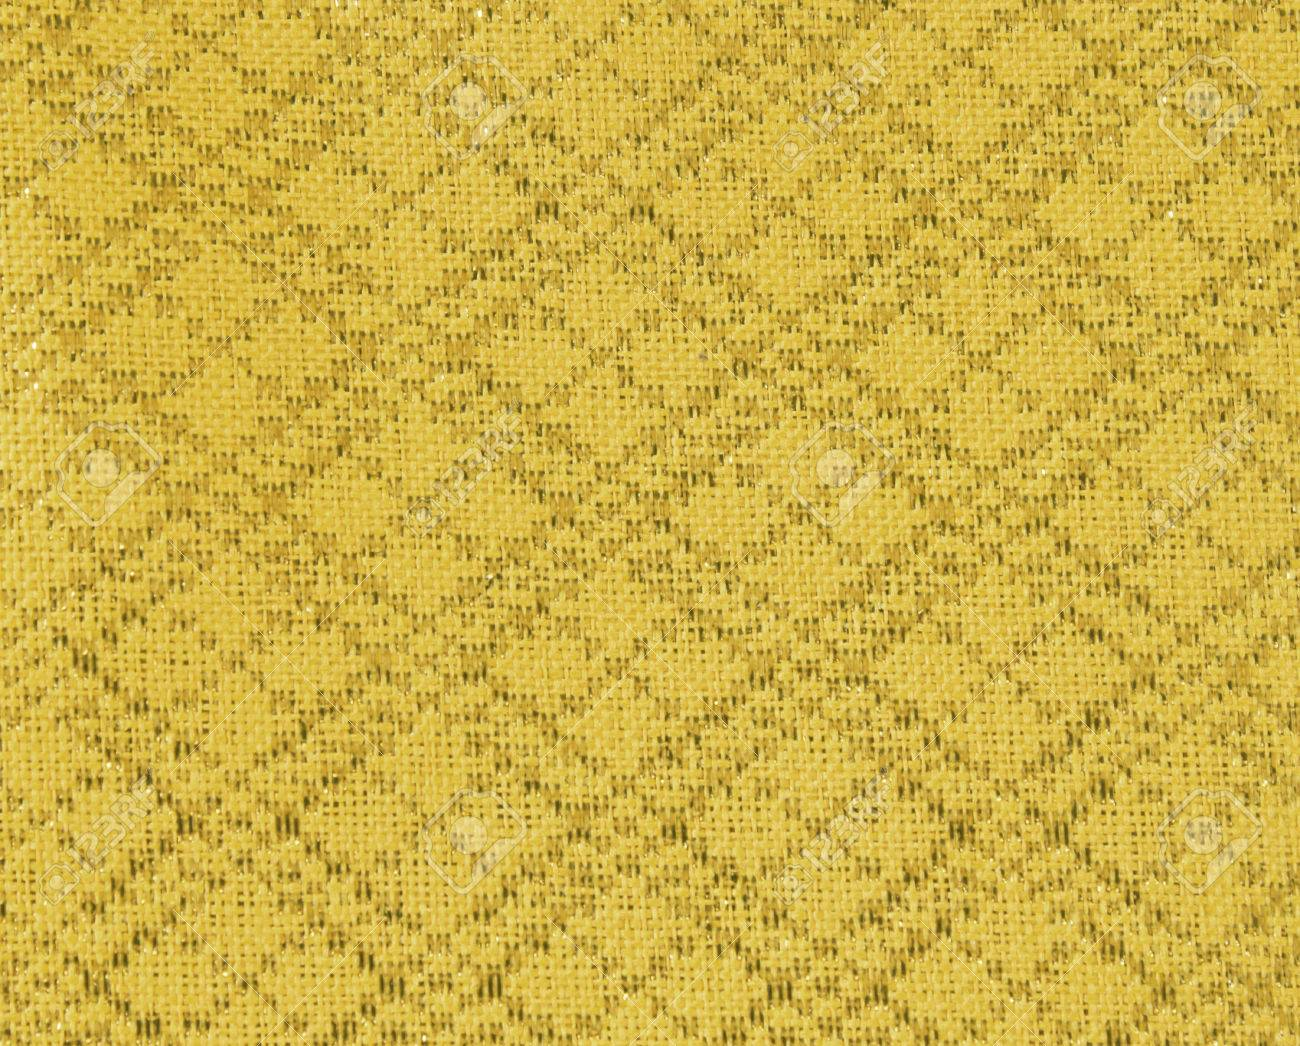 Floral Wallpaper Pattern Light Yellow Abstract Background Texture Interior Stock Photo